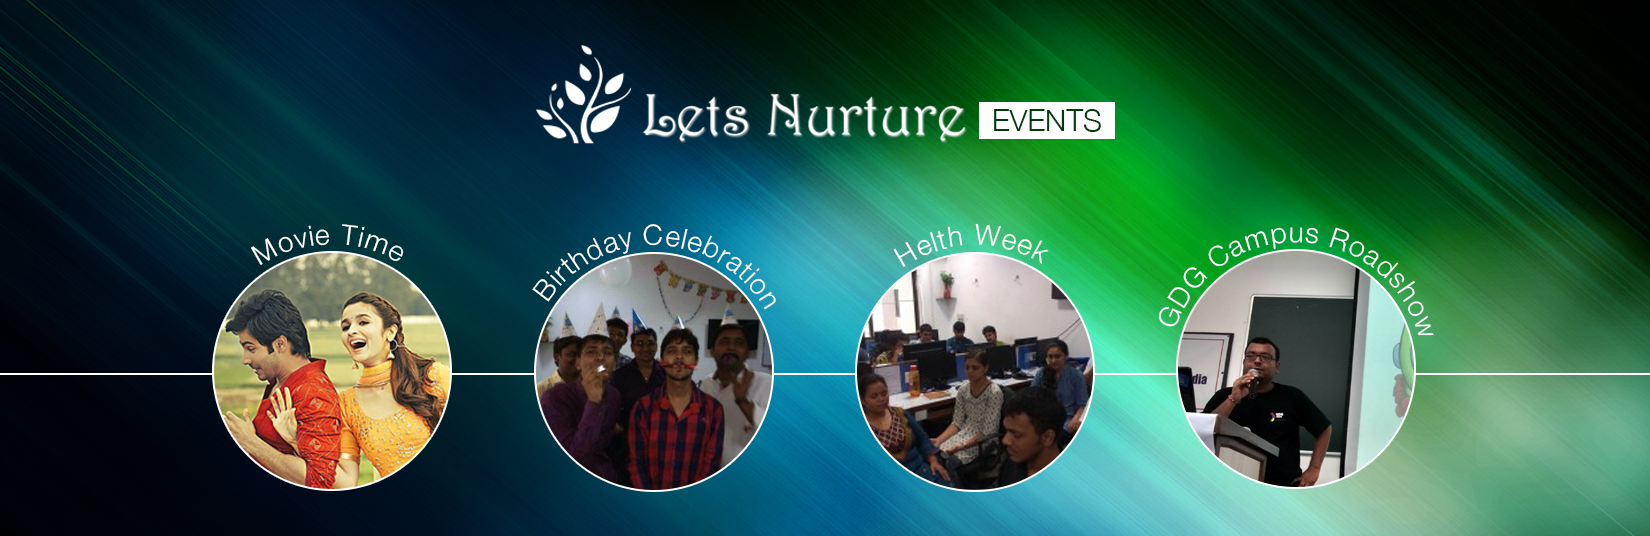 Letsnurture Event, July Month Event, Letsnurture Company Event